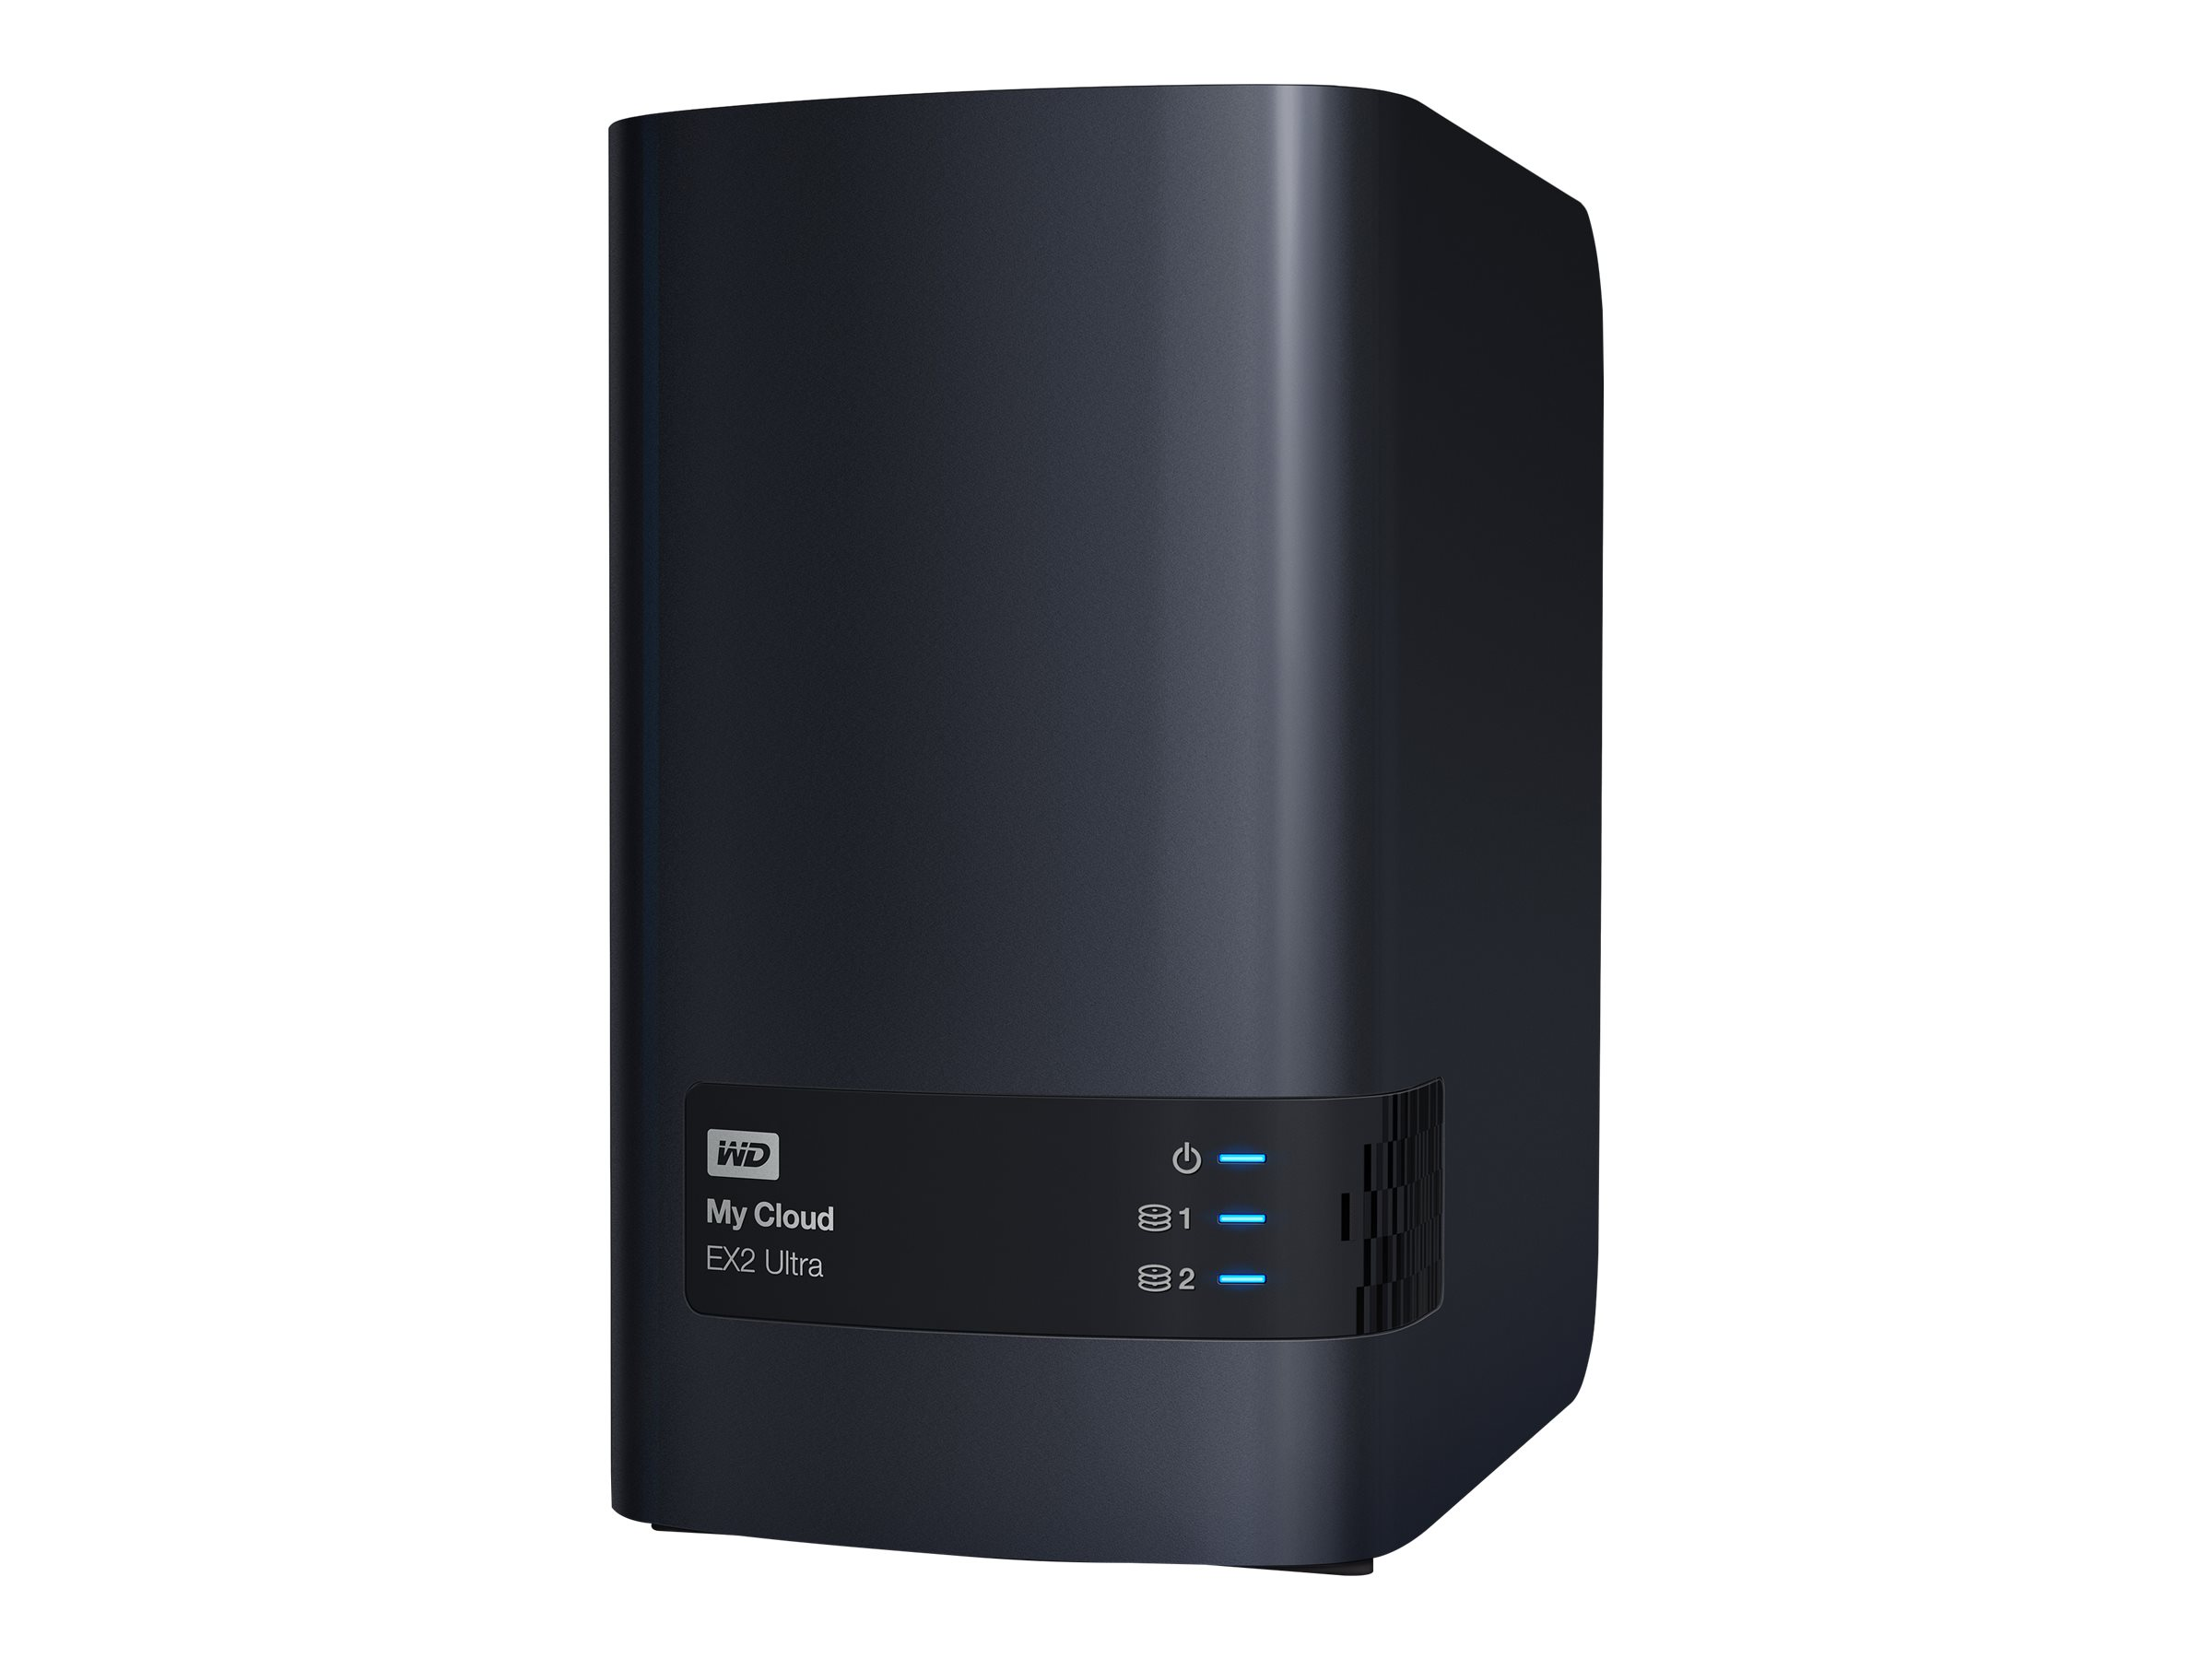 WD My Cloud EX2 Ultra WDBVBZ0120JCH